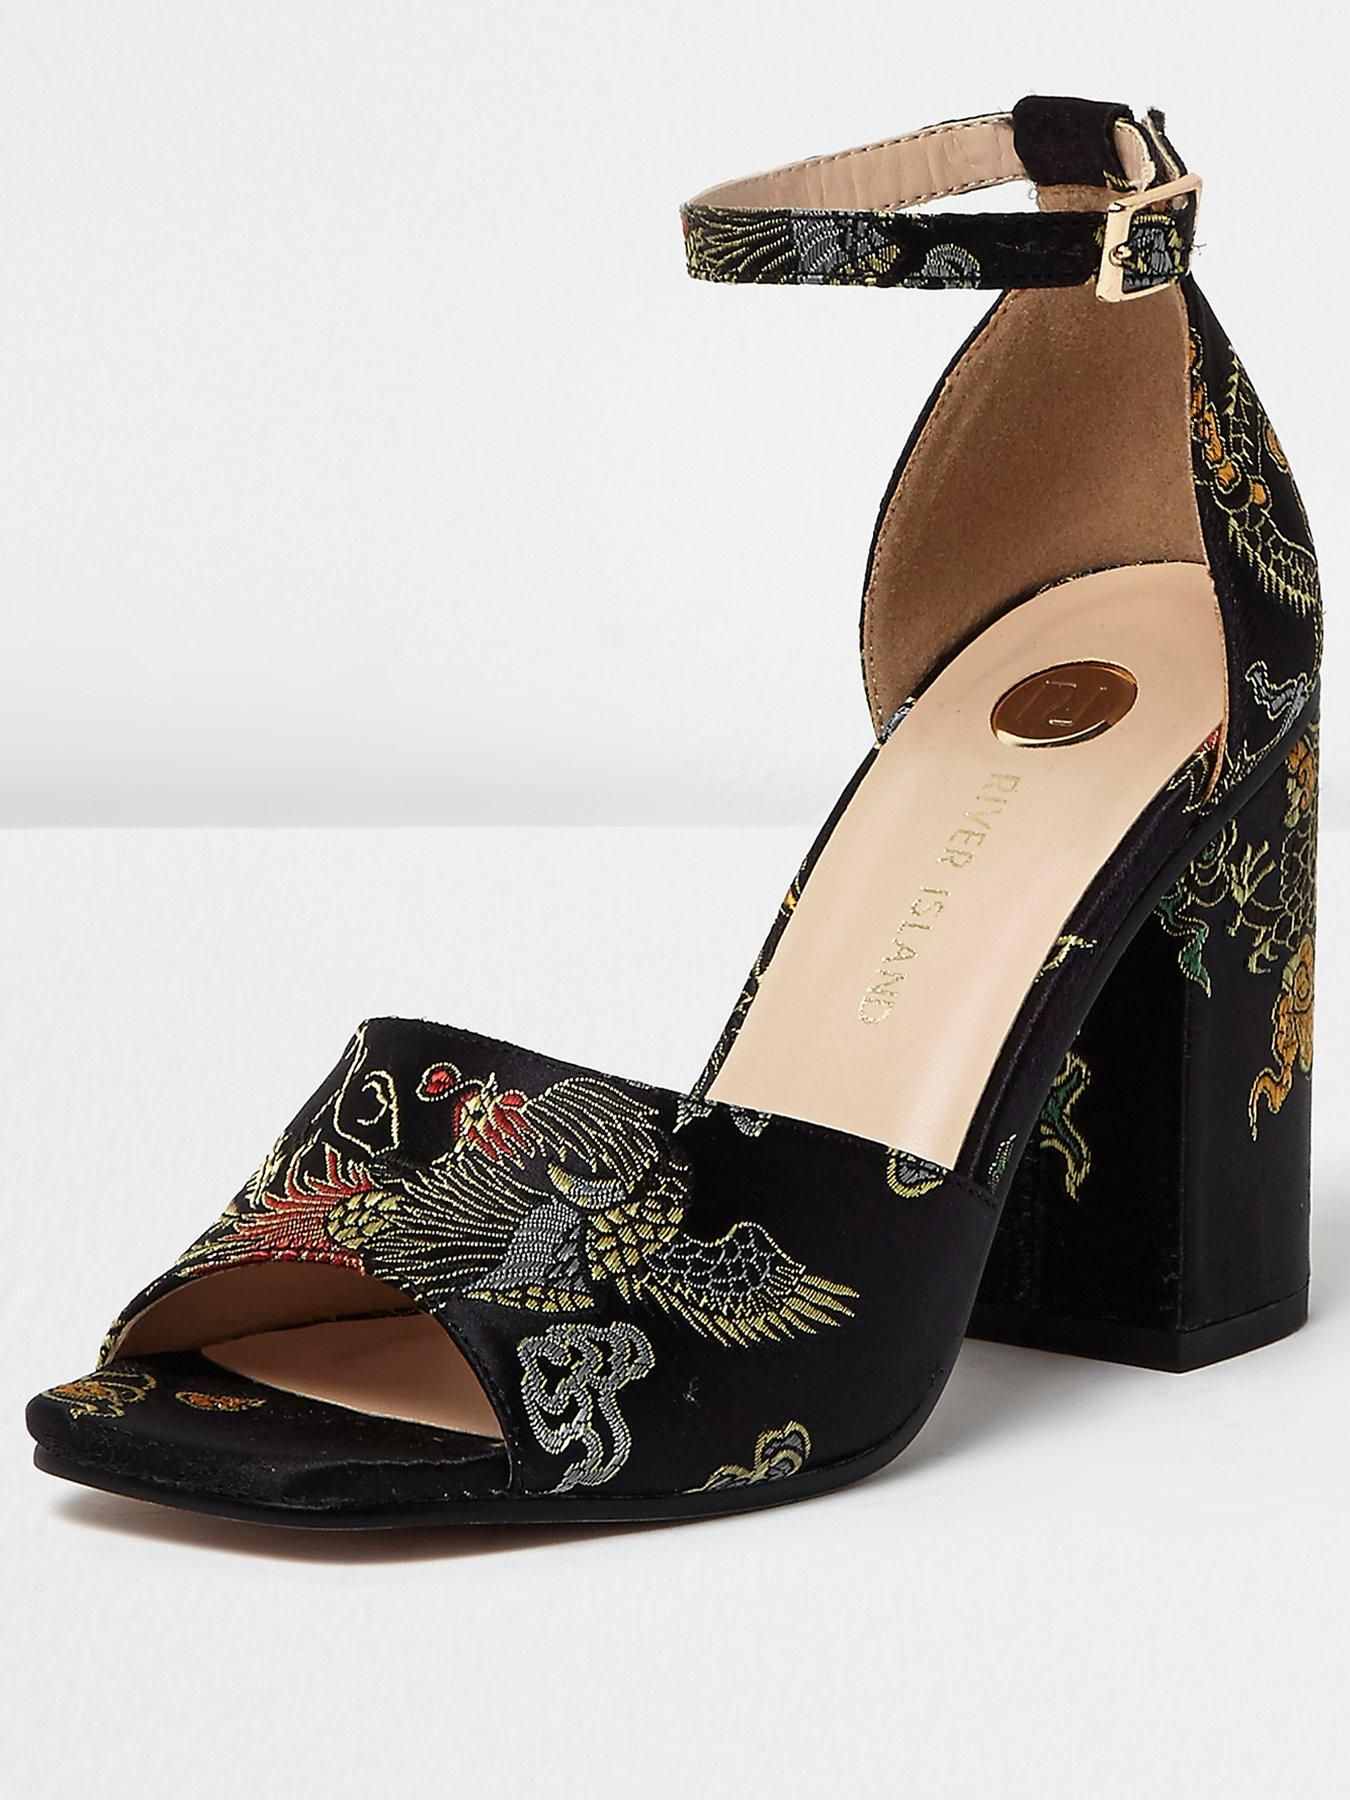 River Island Embroidered Block Heel Sandals Bringing their own retro  revival into your wardrobe this season